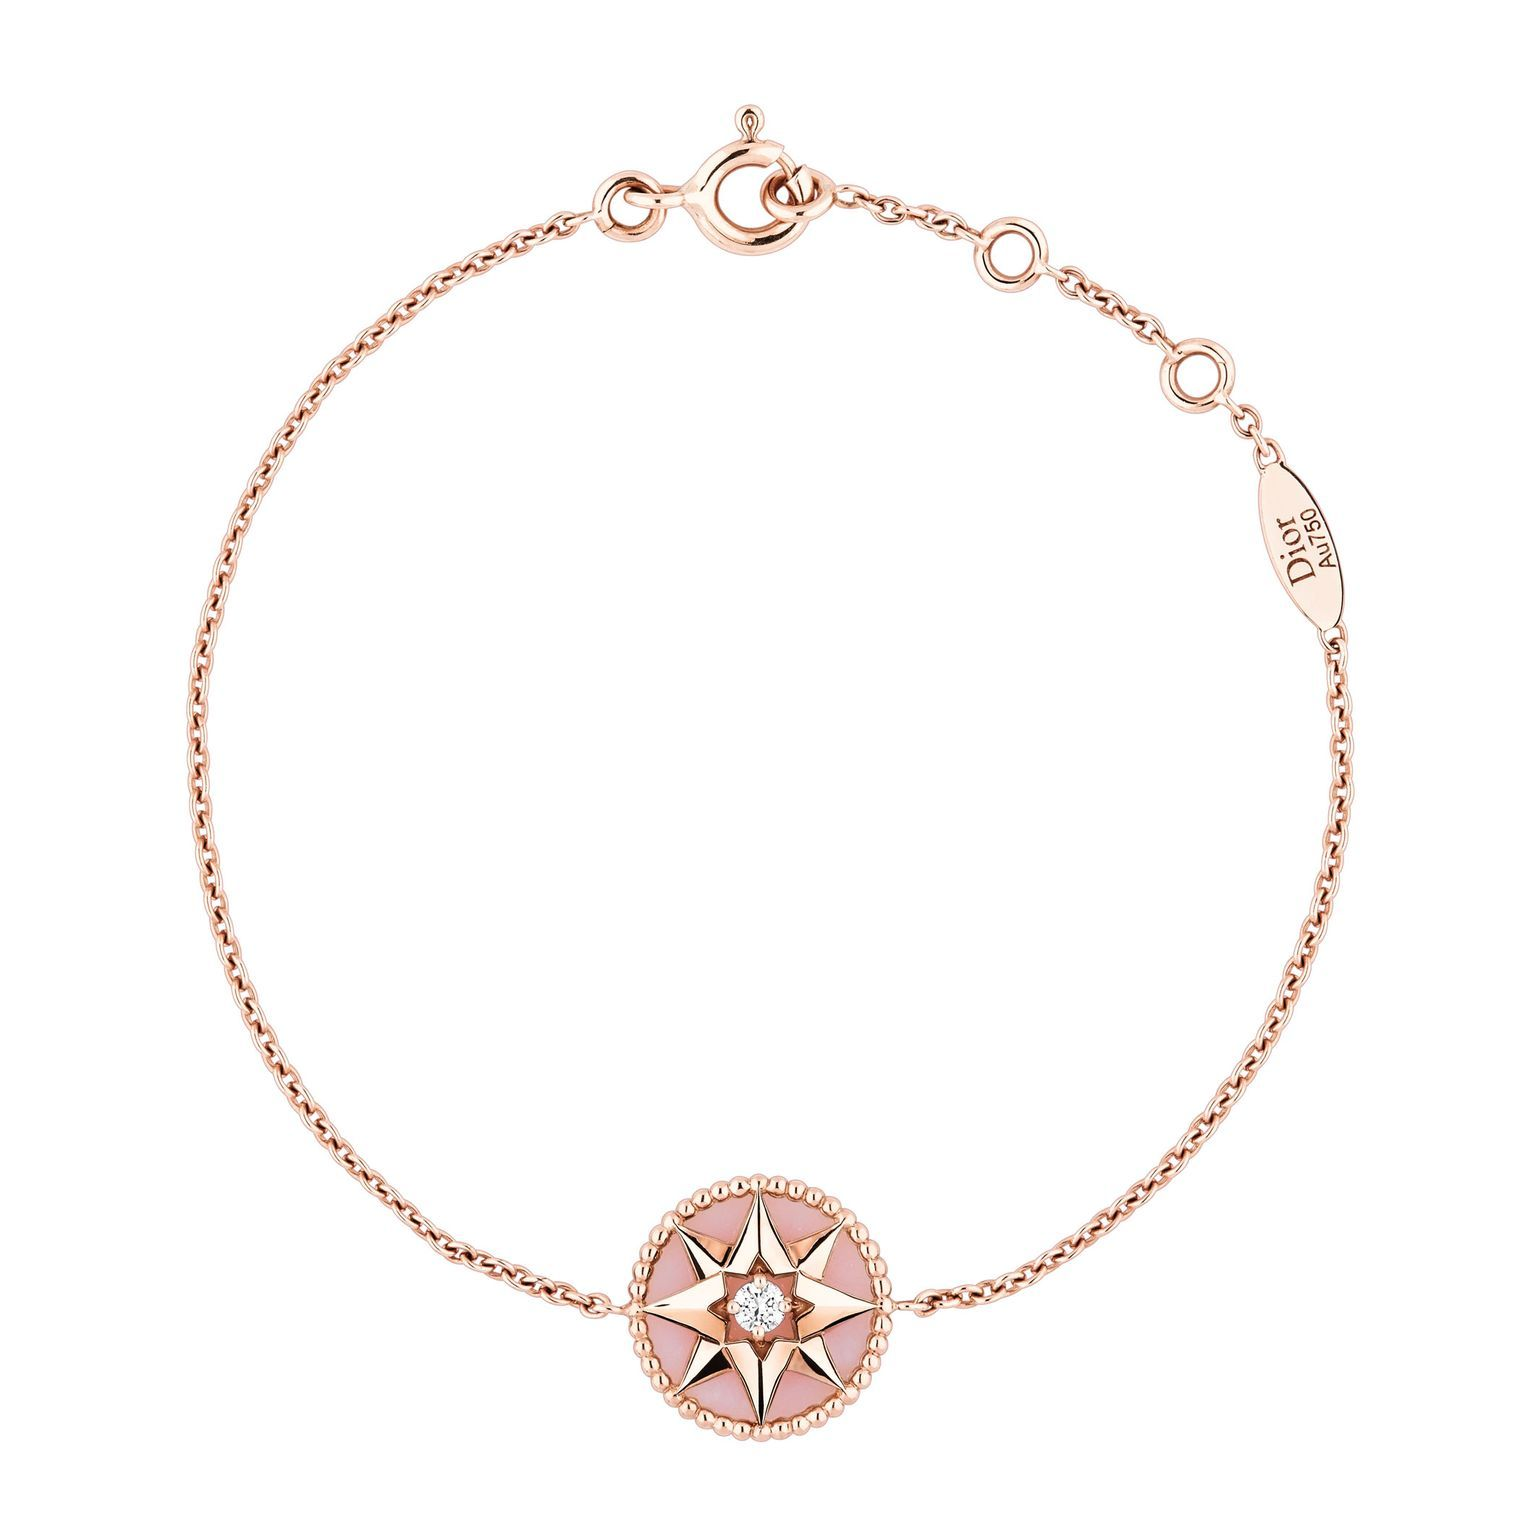 3aed1dce74 Rose des Vents pink opal and diamond bracelet in 2019 | JEWELRY ...